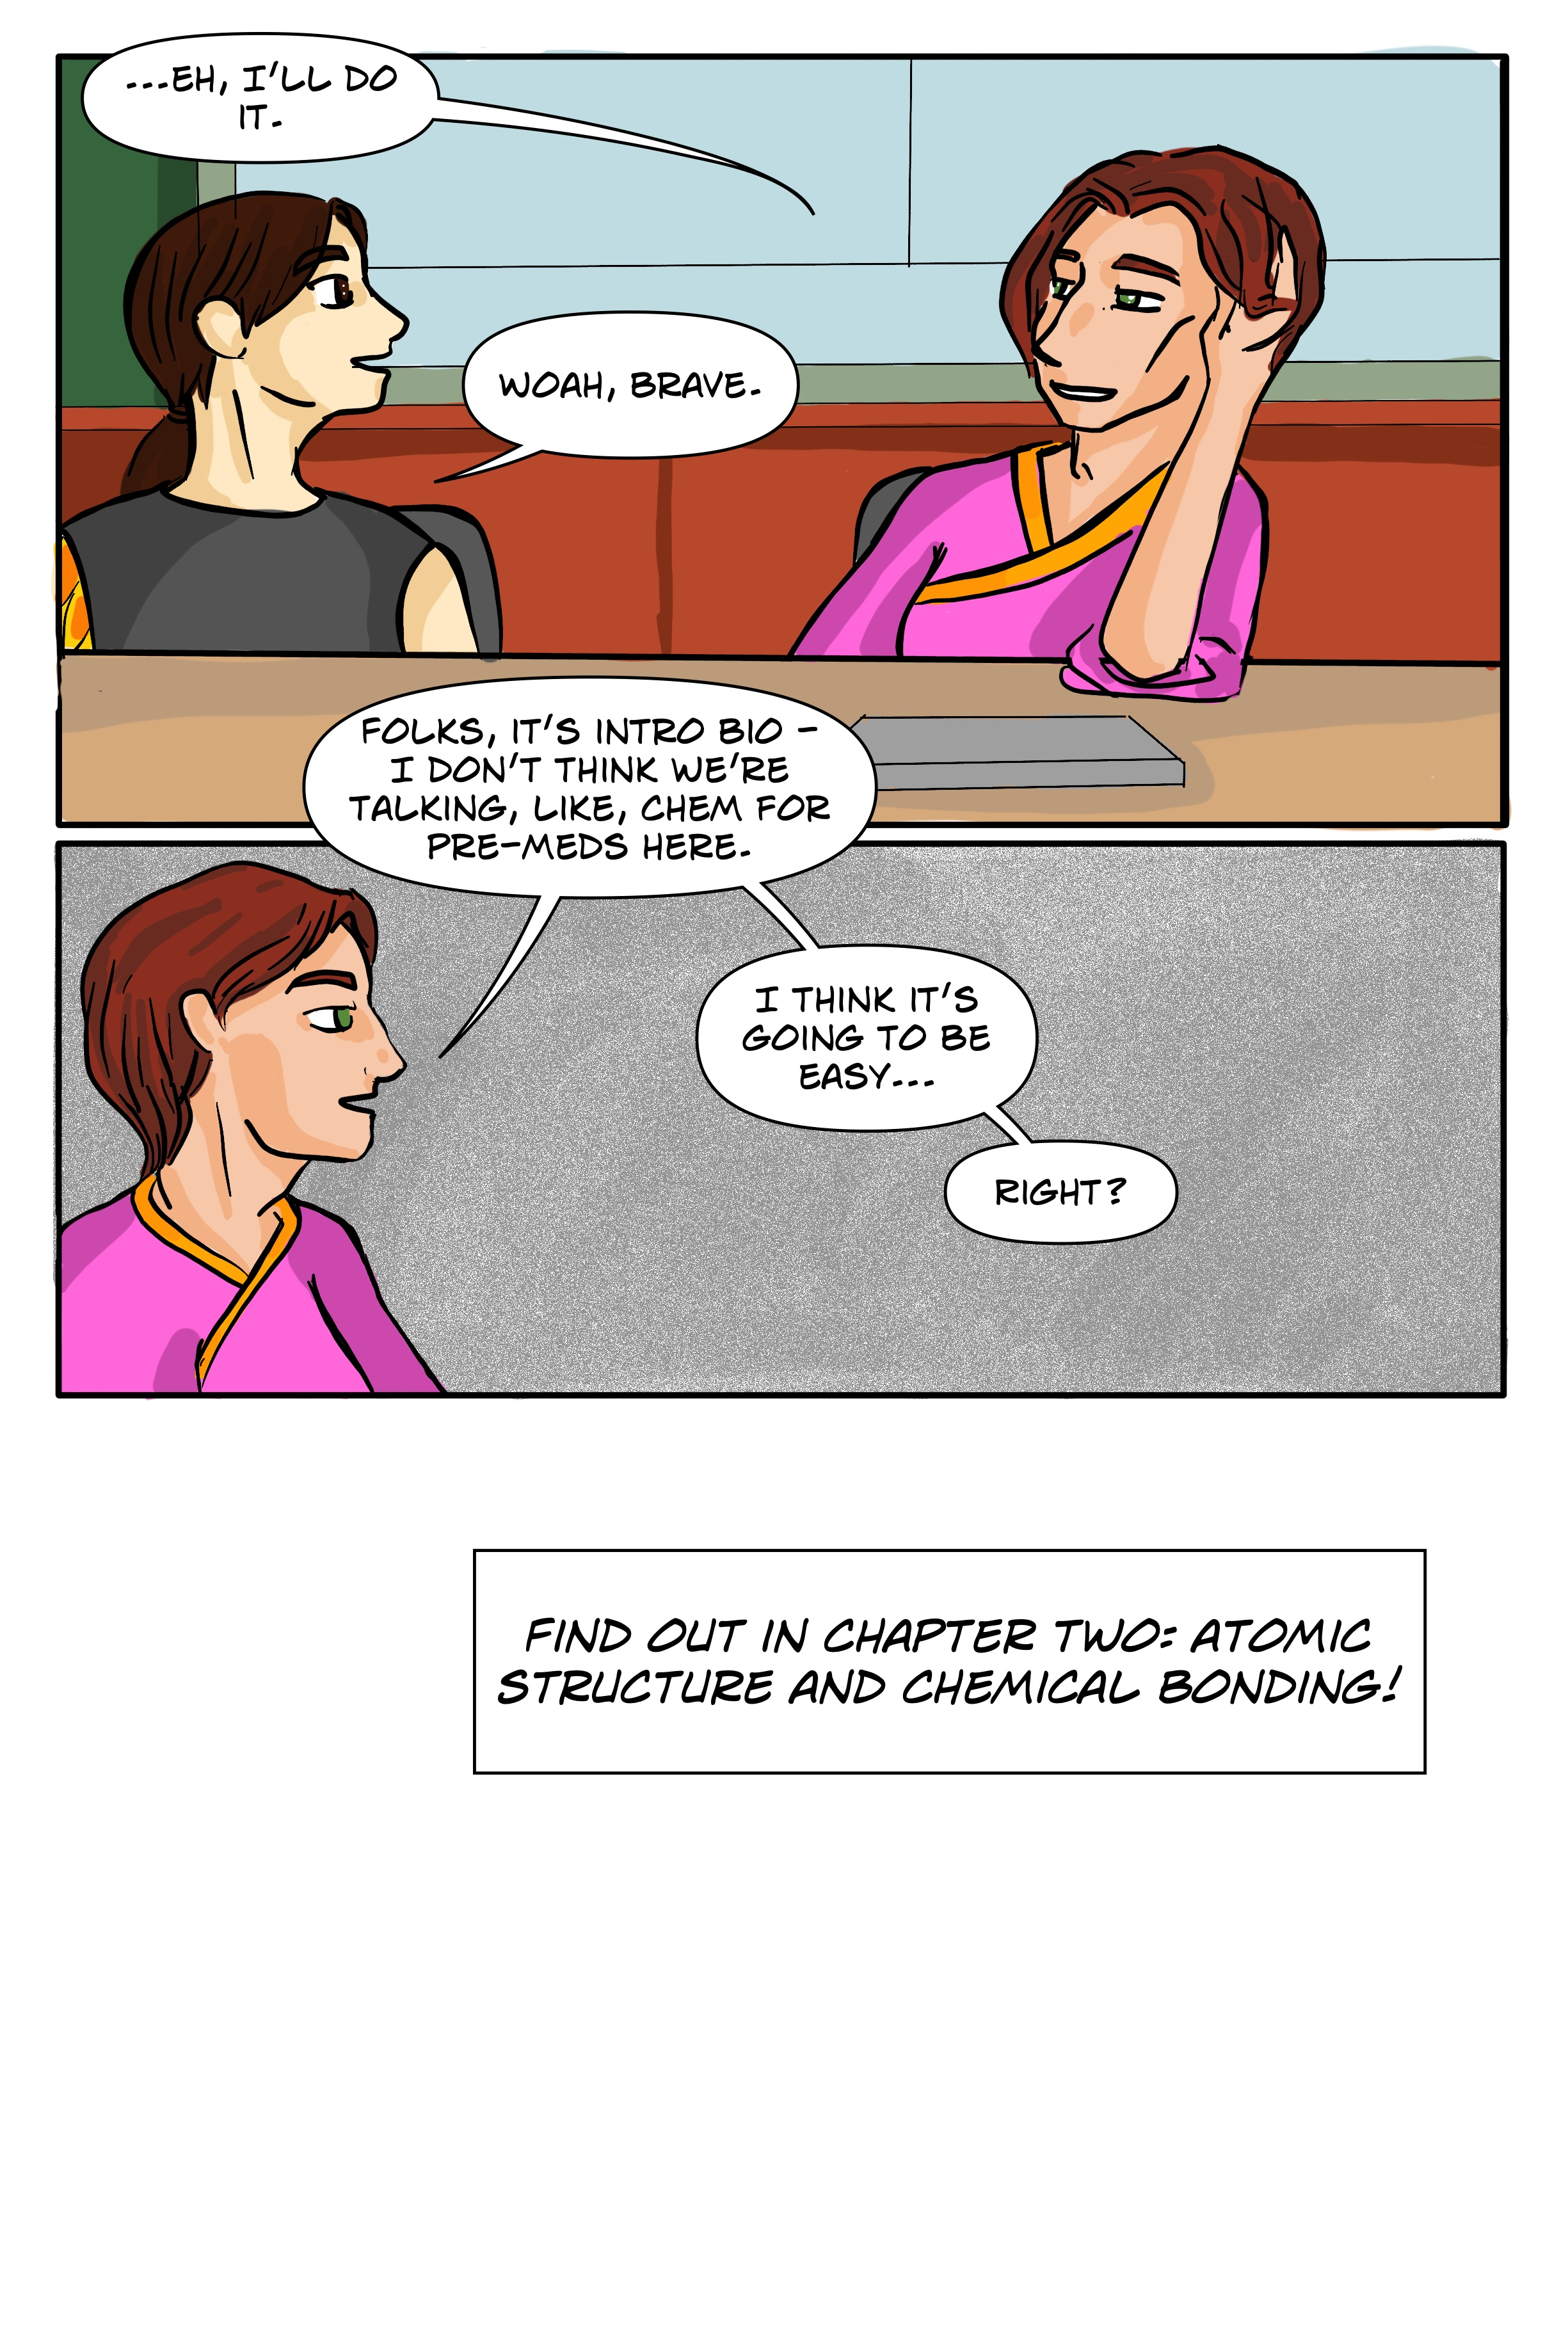 chapter 1 Page-17.jpg